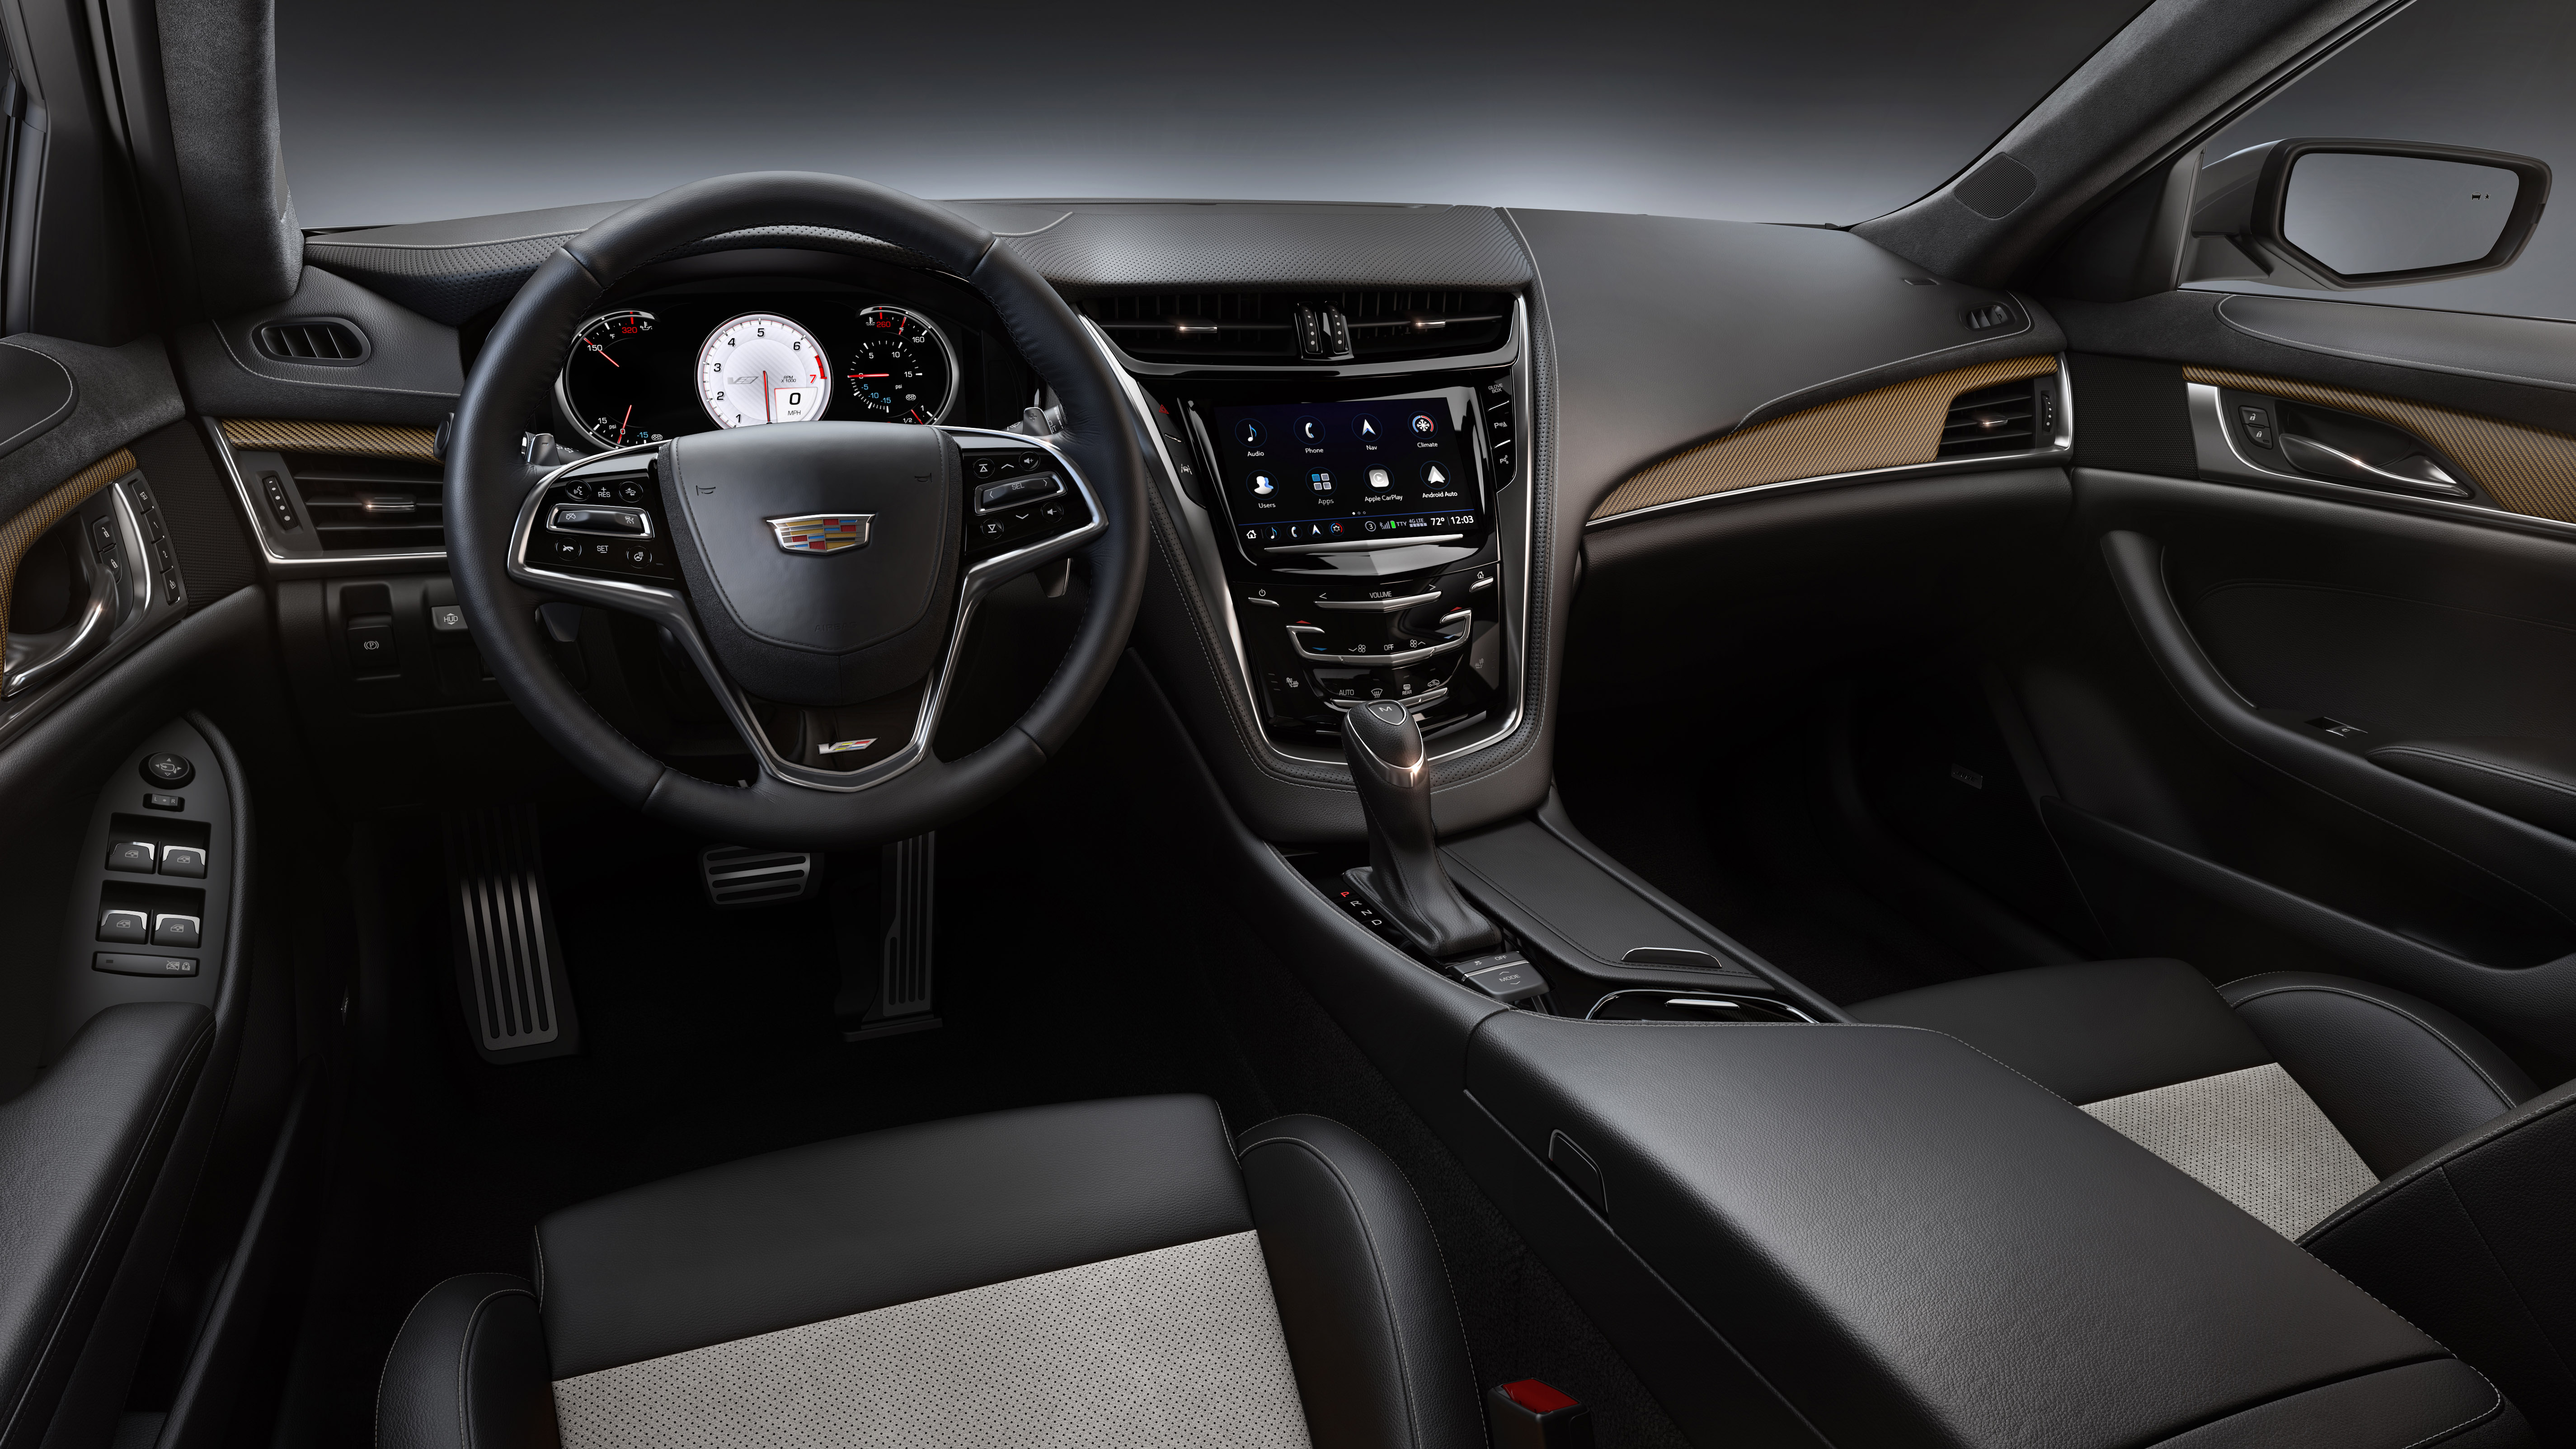 2019 Cadillac V-Series Pedestal Edition: The Ultimate